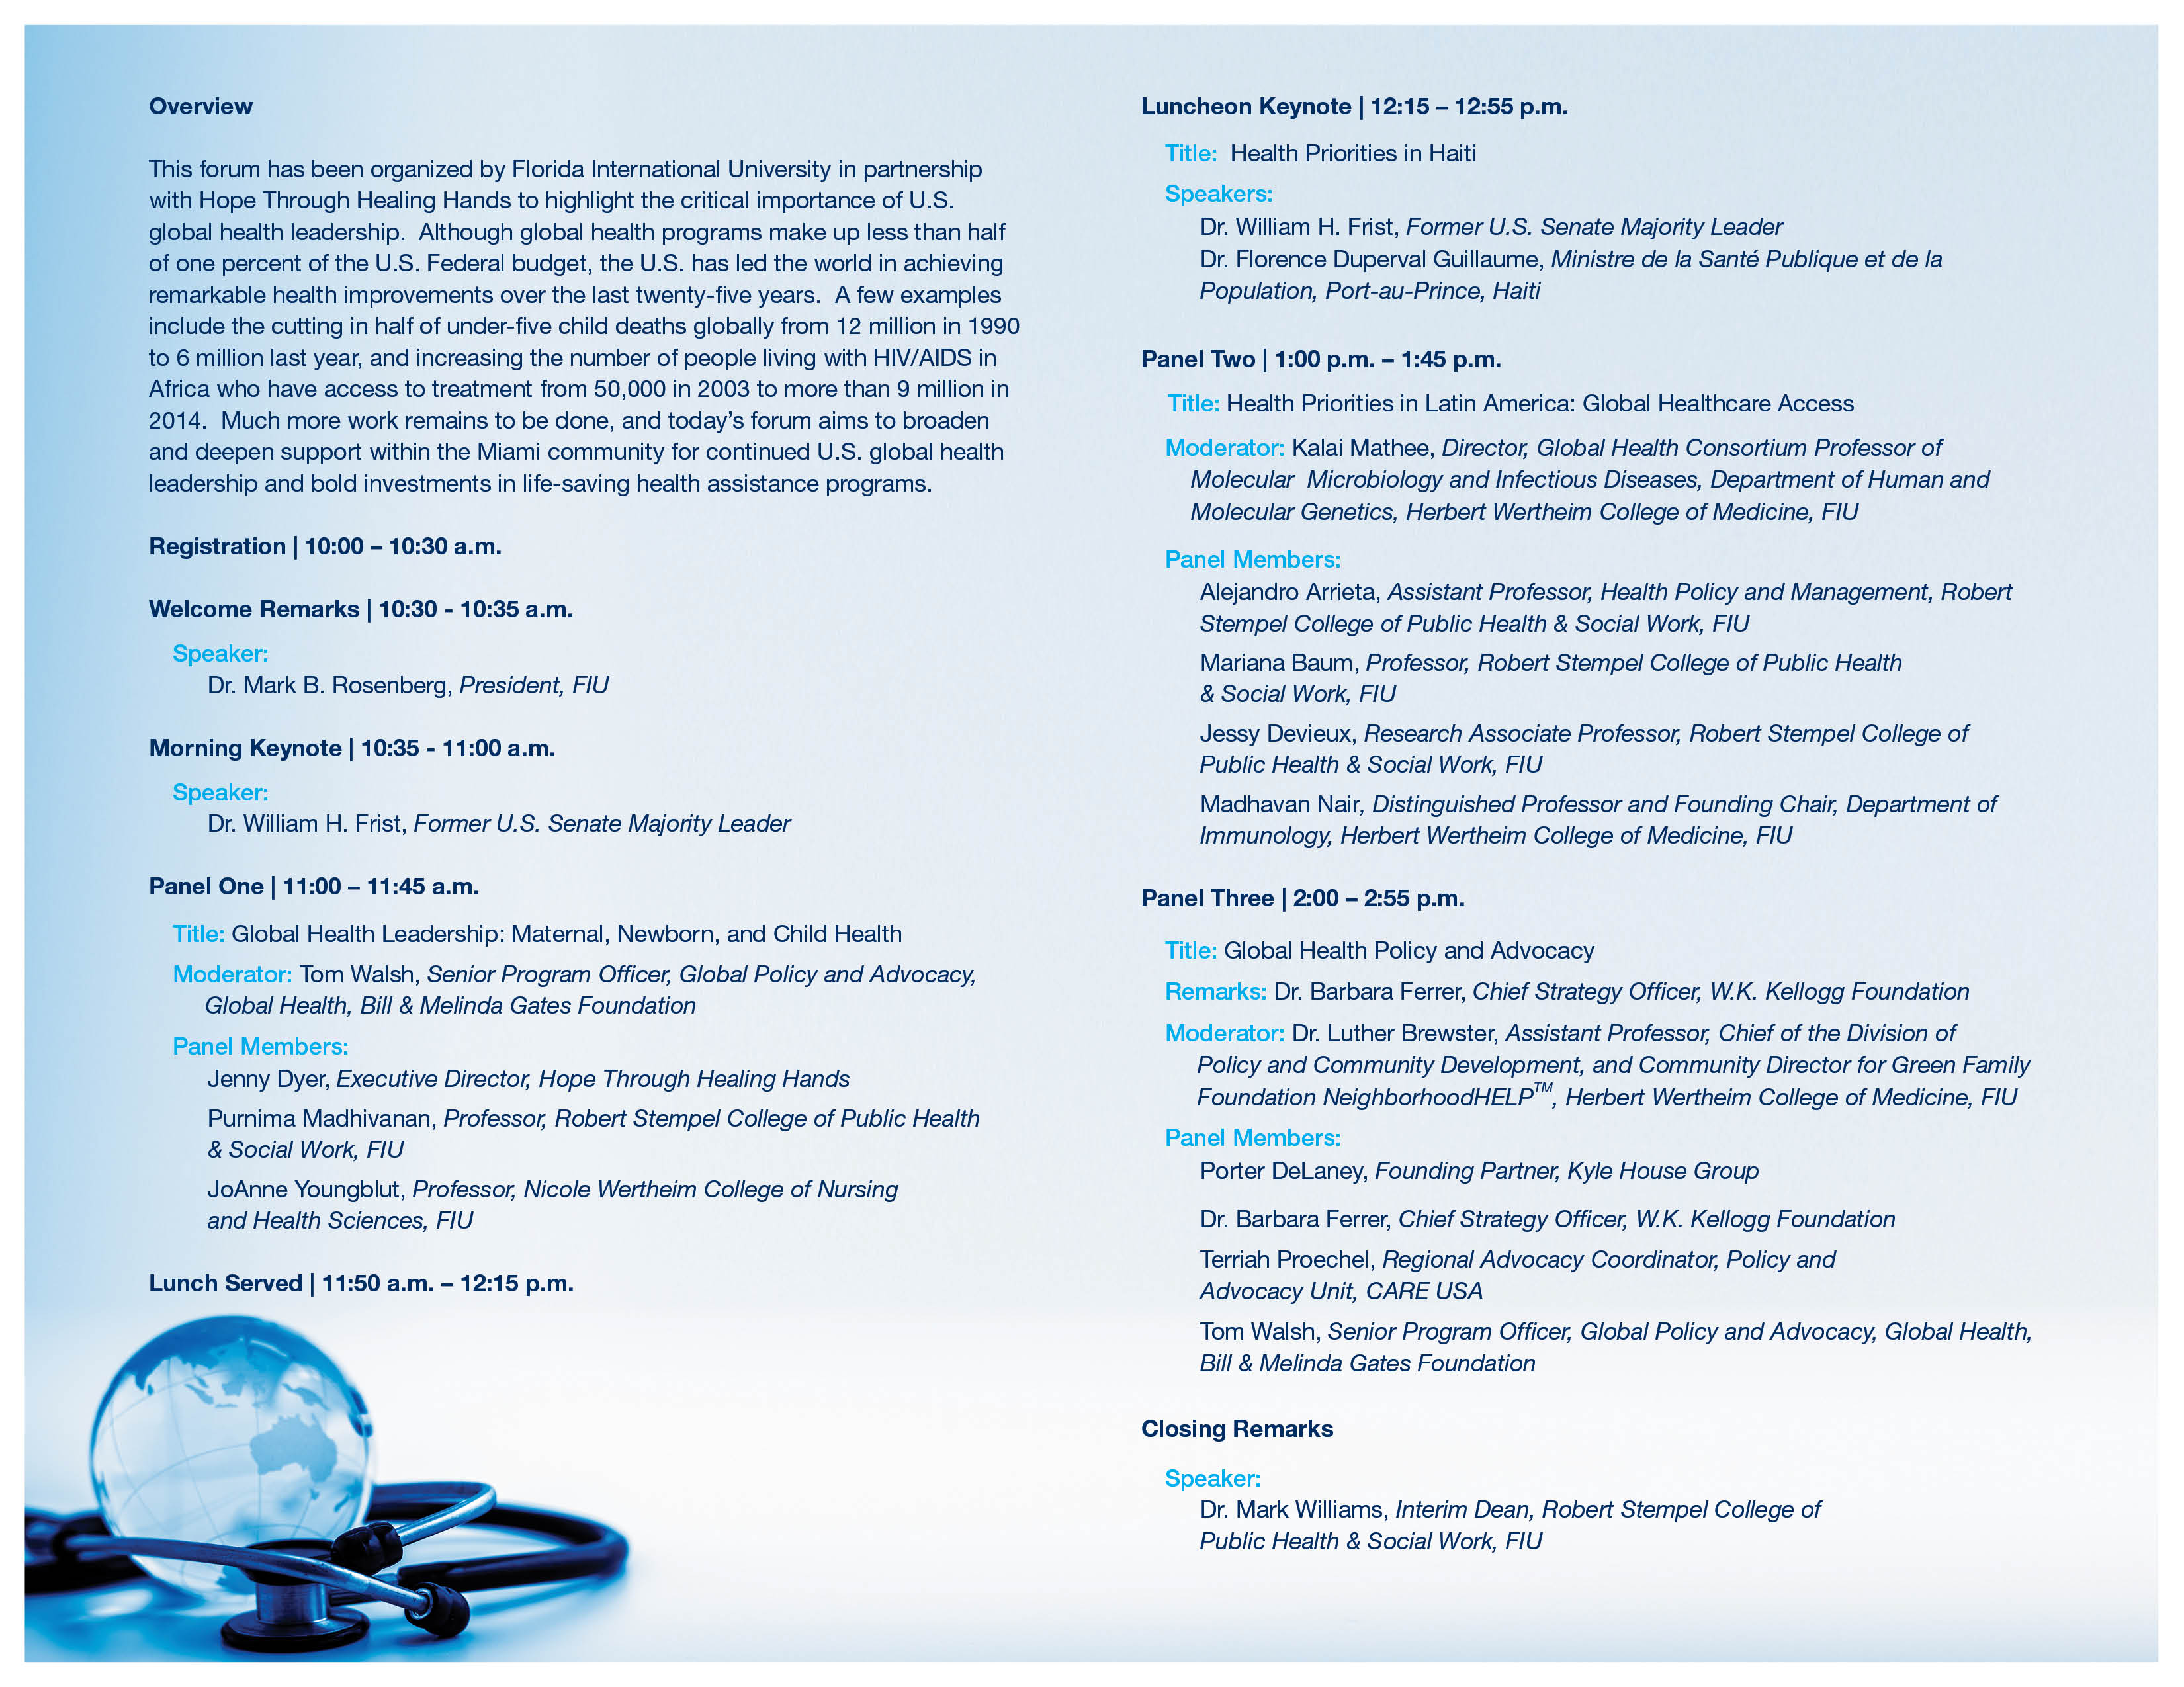 Leading government officials, medical professionals, researchers and health experts will come together for a global health forum on maternal, newborn and child health at Florida International University (FIU) on Thursday, April 9, 2015. Former Senate Majority leader Bill Frist, founder of Hope Through Healing Hands, will be the keynote speaker.